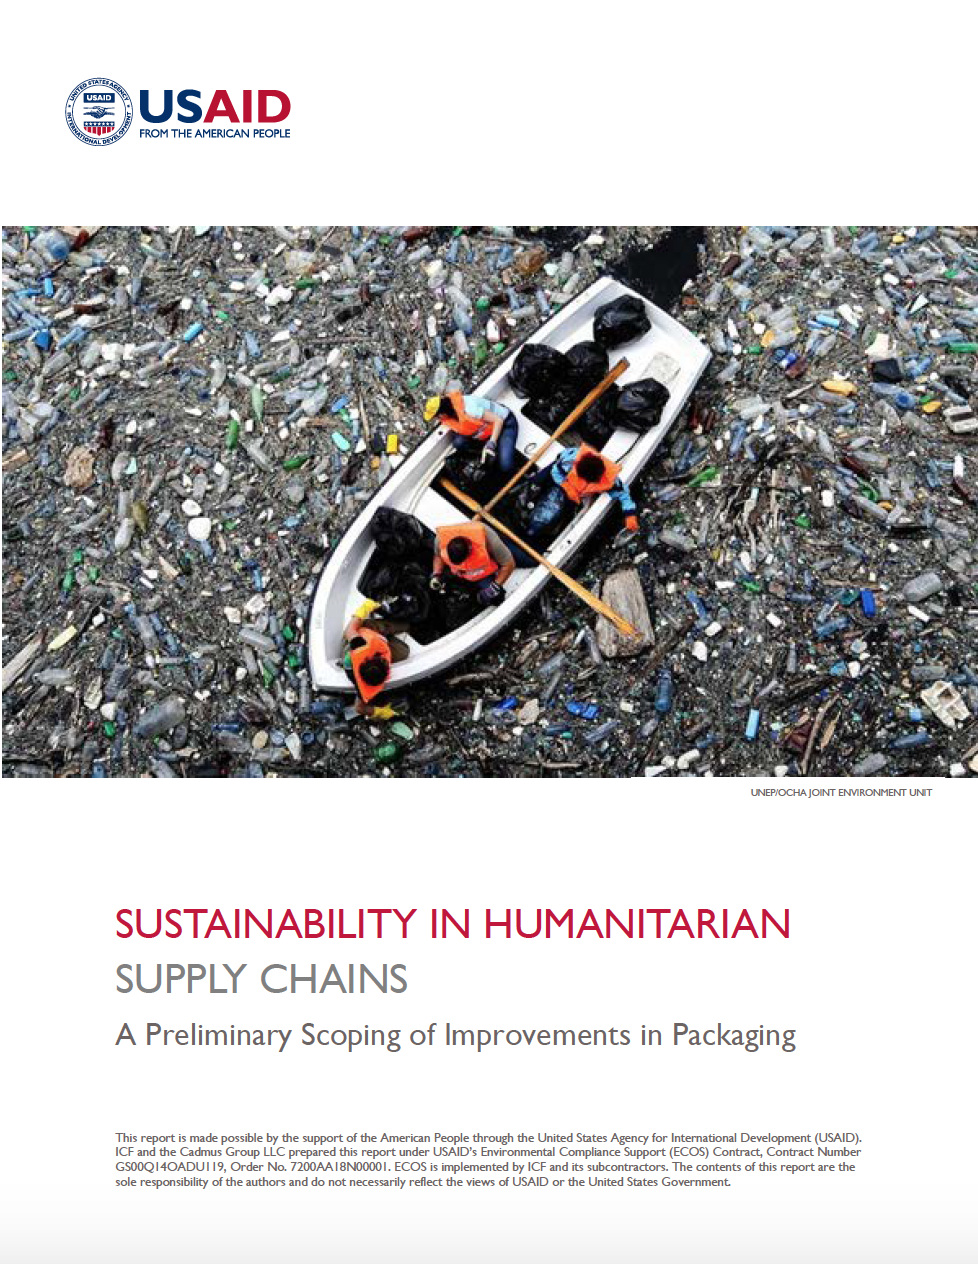 Sustainability in Humanitarian Supply Chains: A Preliminary Scoping of Improvements in Packaging Waste Management